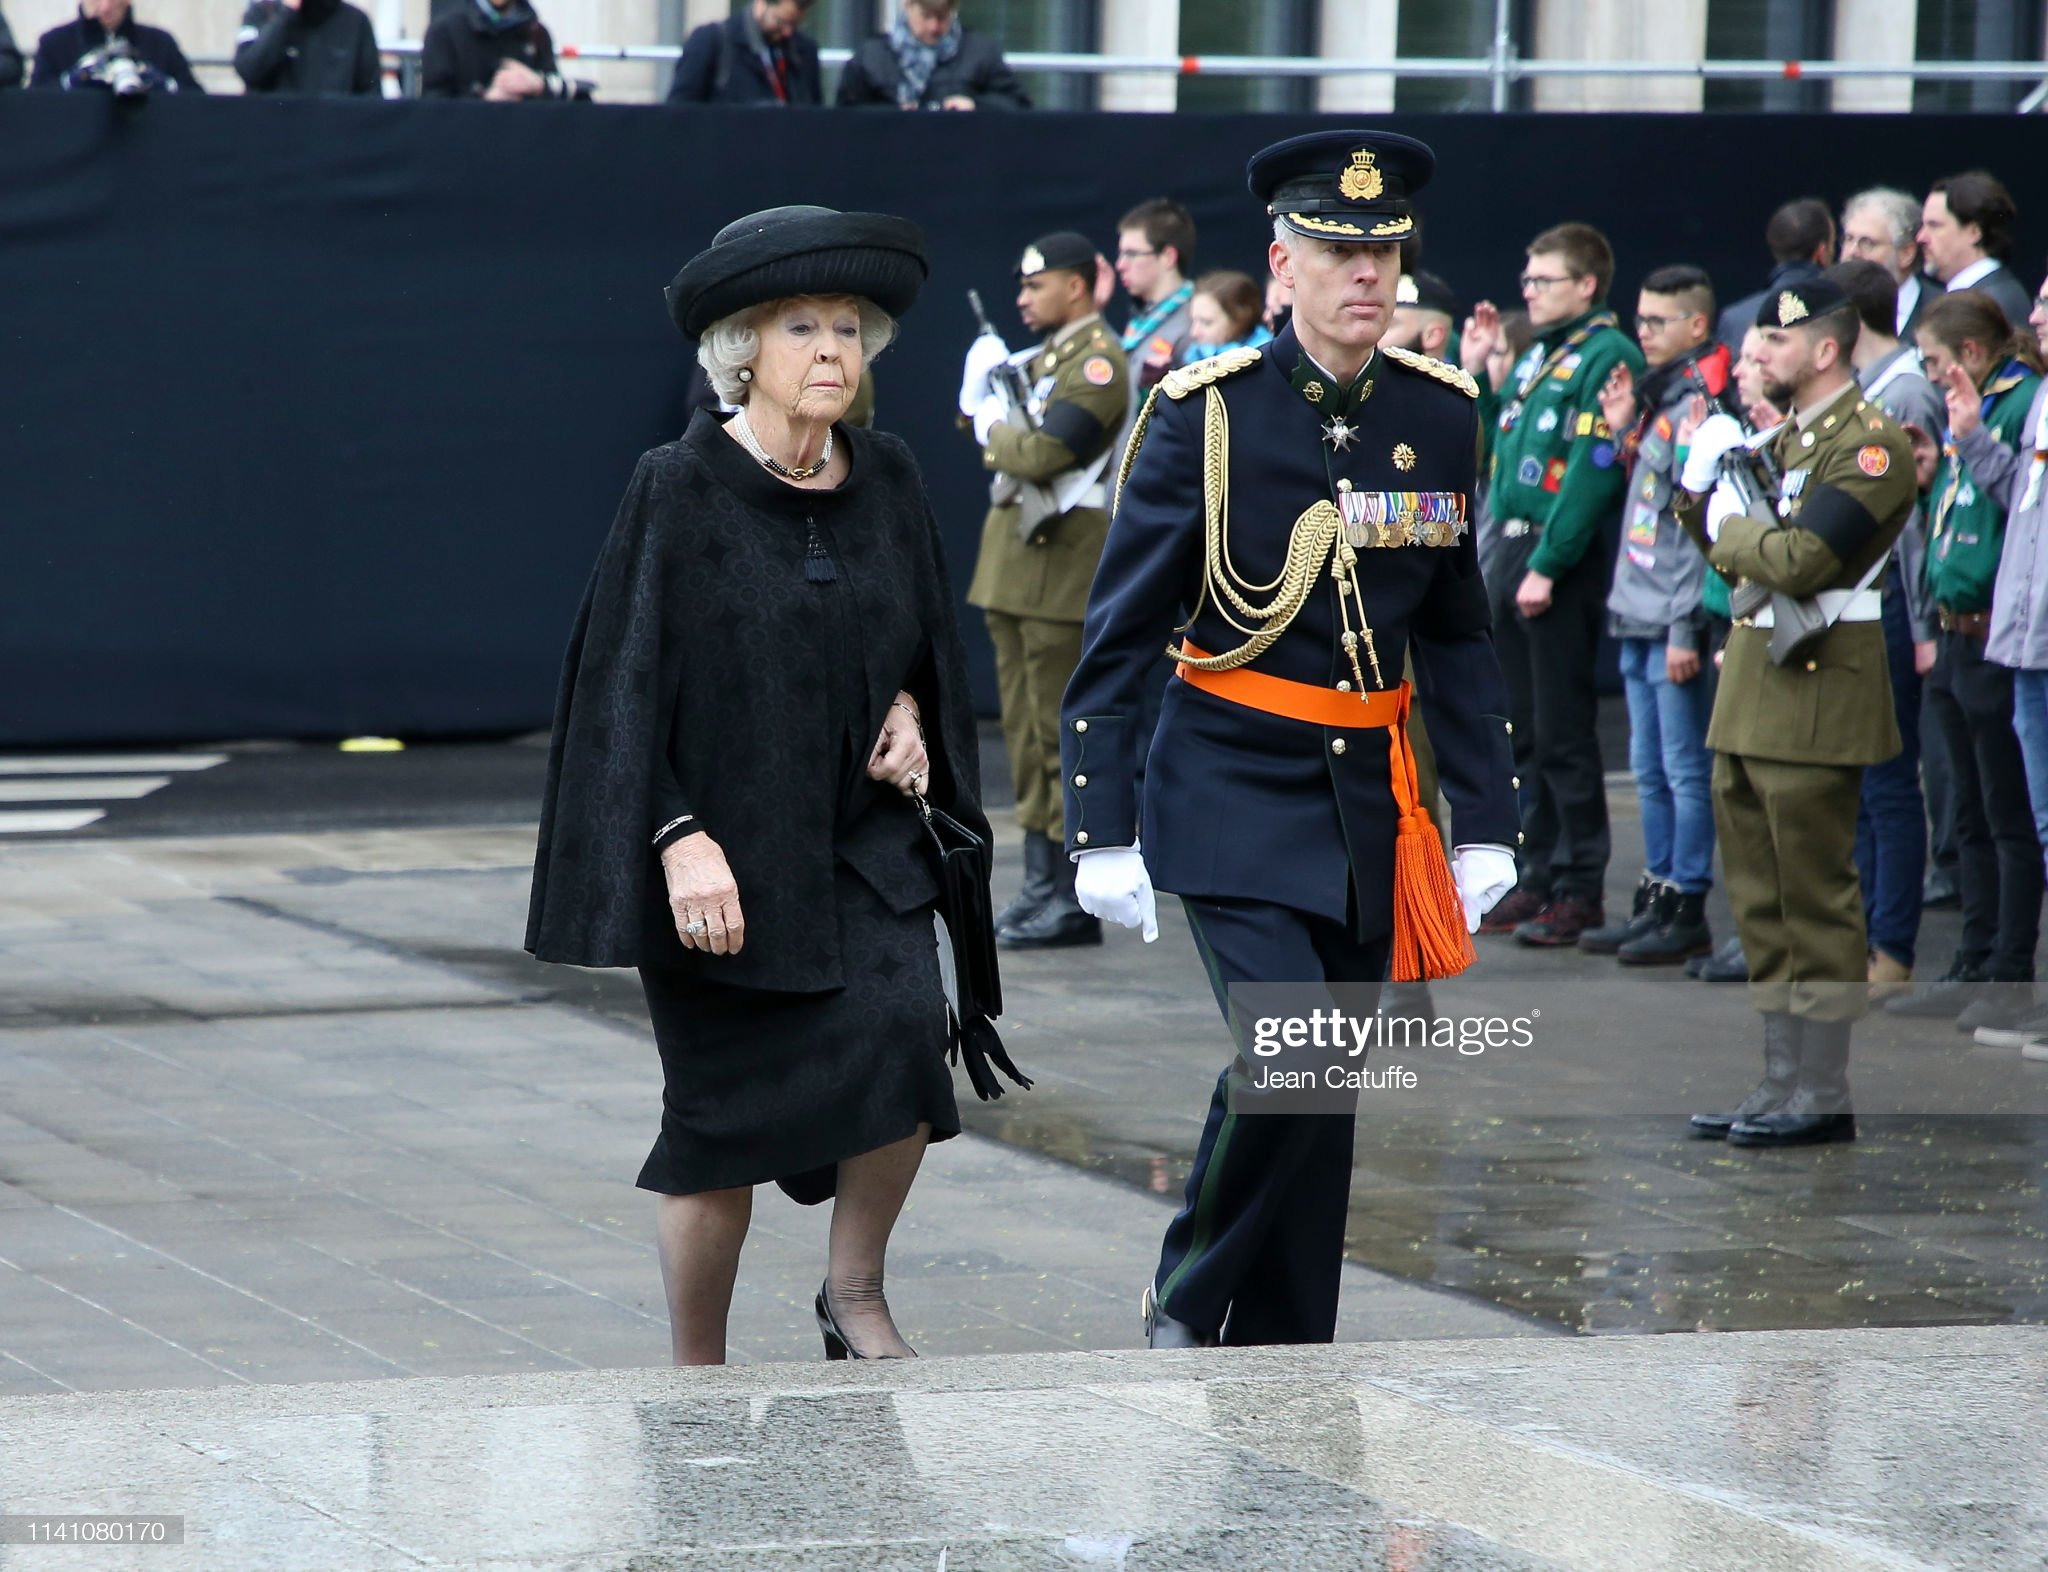 Похороны Великого Герцога Жана https://media.gettyimages.com/photos/princess-beatrix-of-the-netherlands-arrives-for-the-funeral-of-grand-picture-id1141080170?s=2048x2048